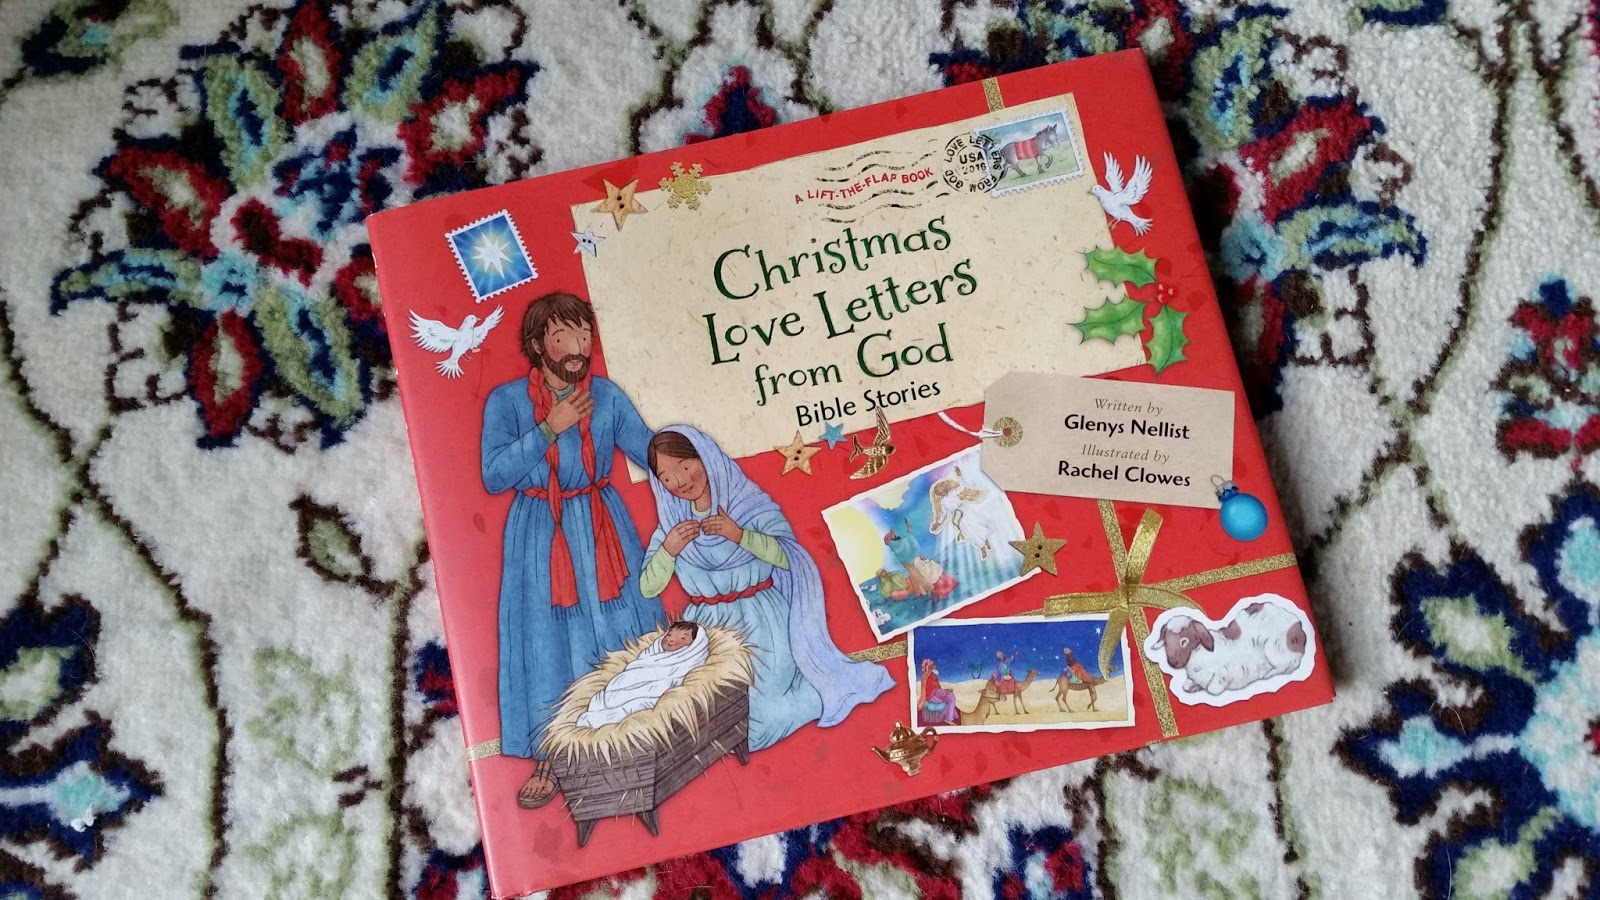 Journey for life christmas love letters from god review and give